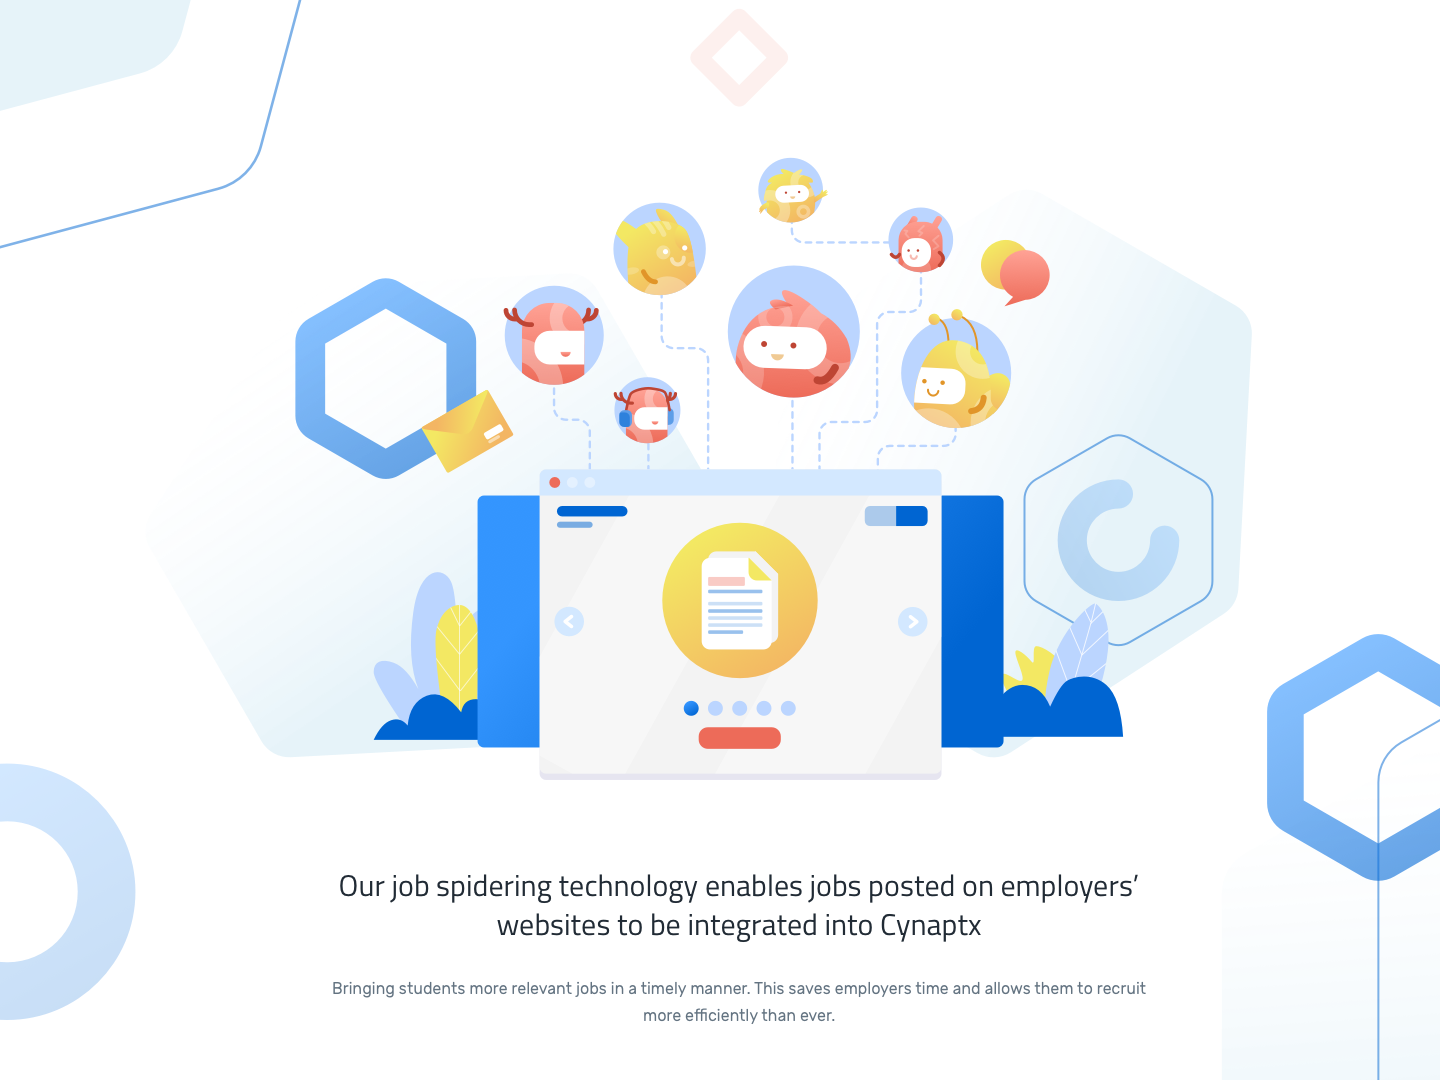 Illustration For Cynaptx employee job integrated intro website cute monster management education design homepage illustration